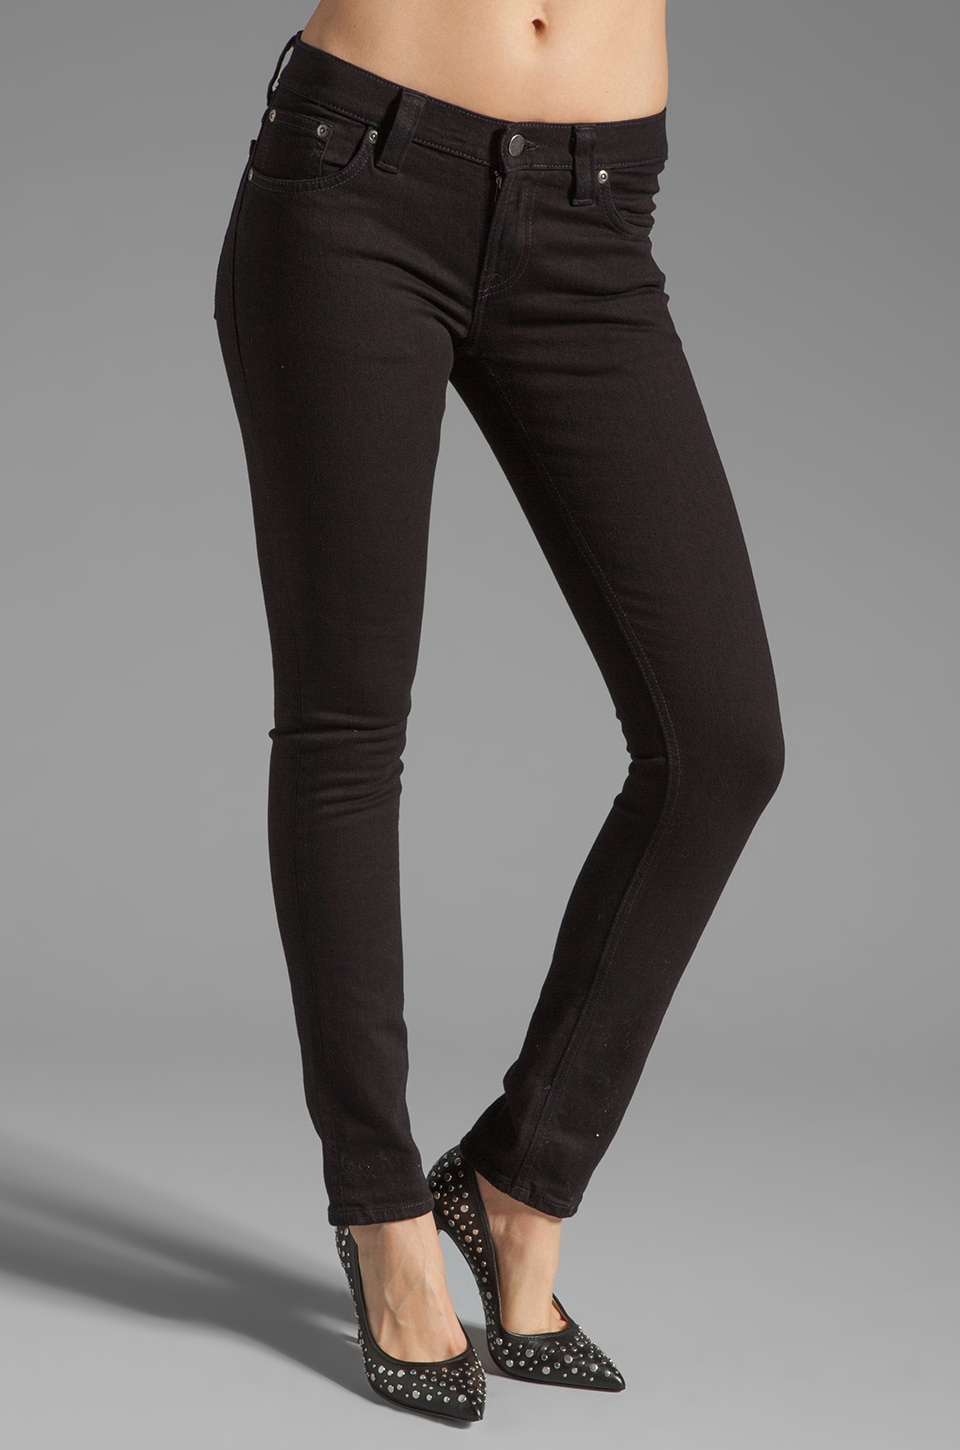 Nudie Jeans Tight Long John in Organic Black Black